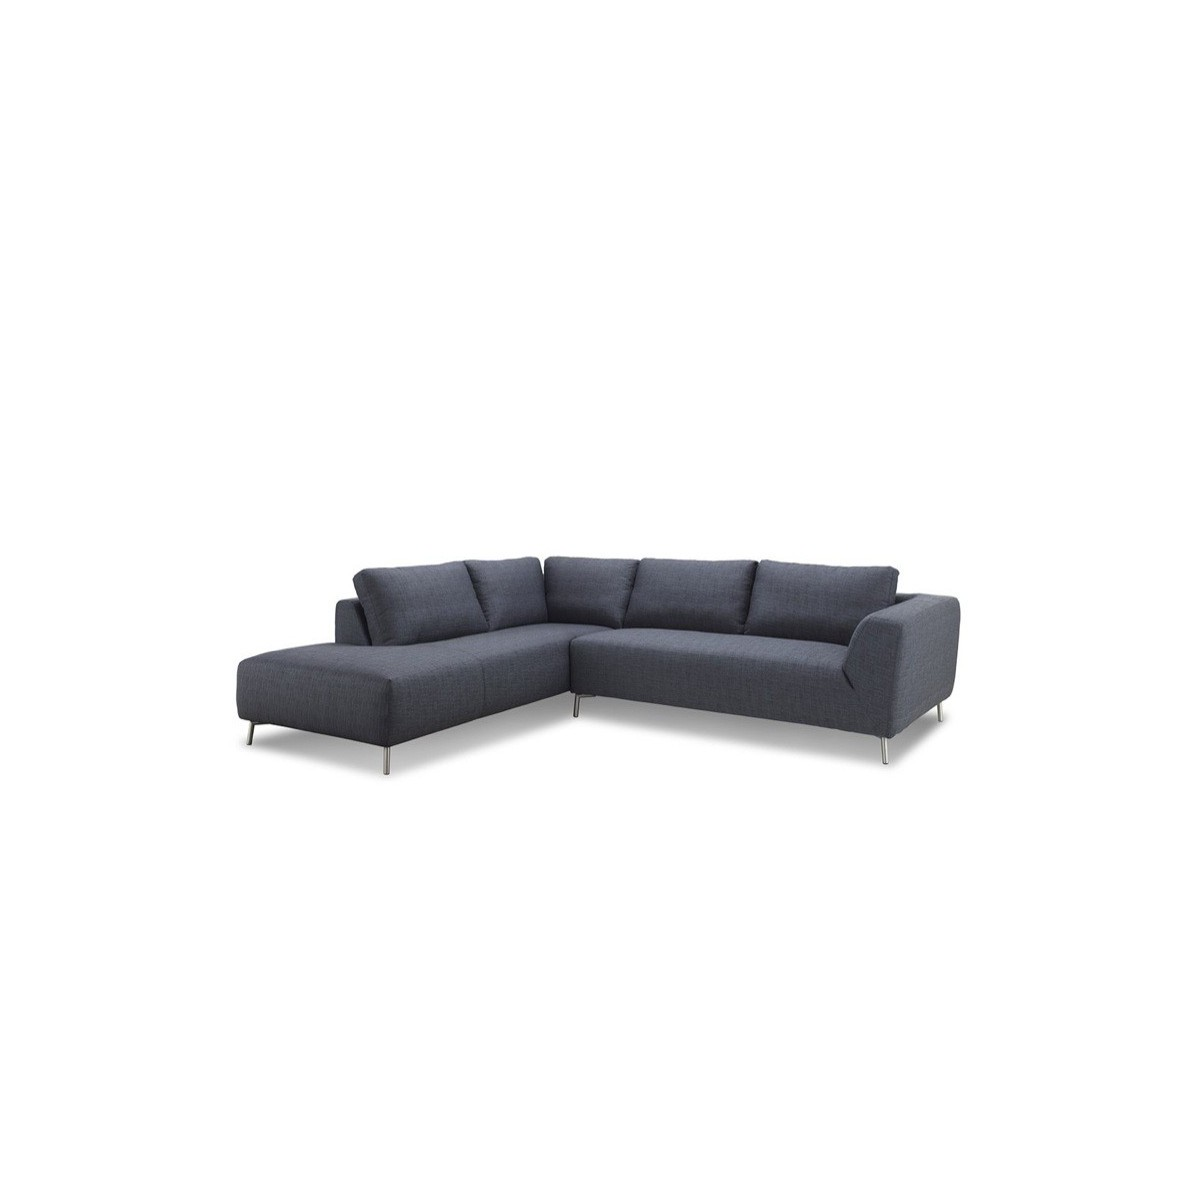 Corner Sofa Design Left 5 Places With Justine Chaise In Fabric Dark Gray Amp Story 4167